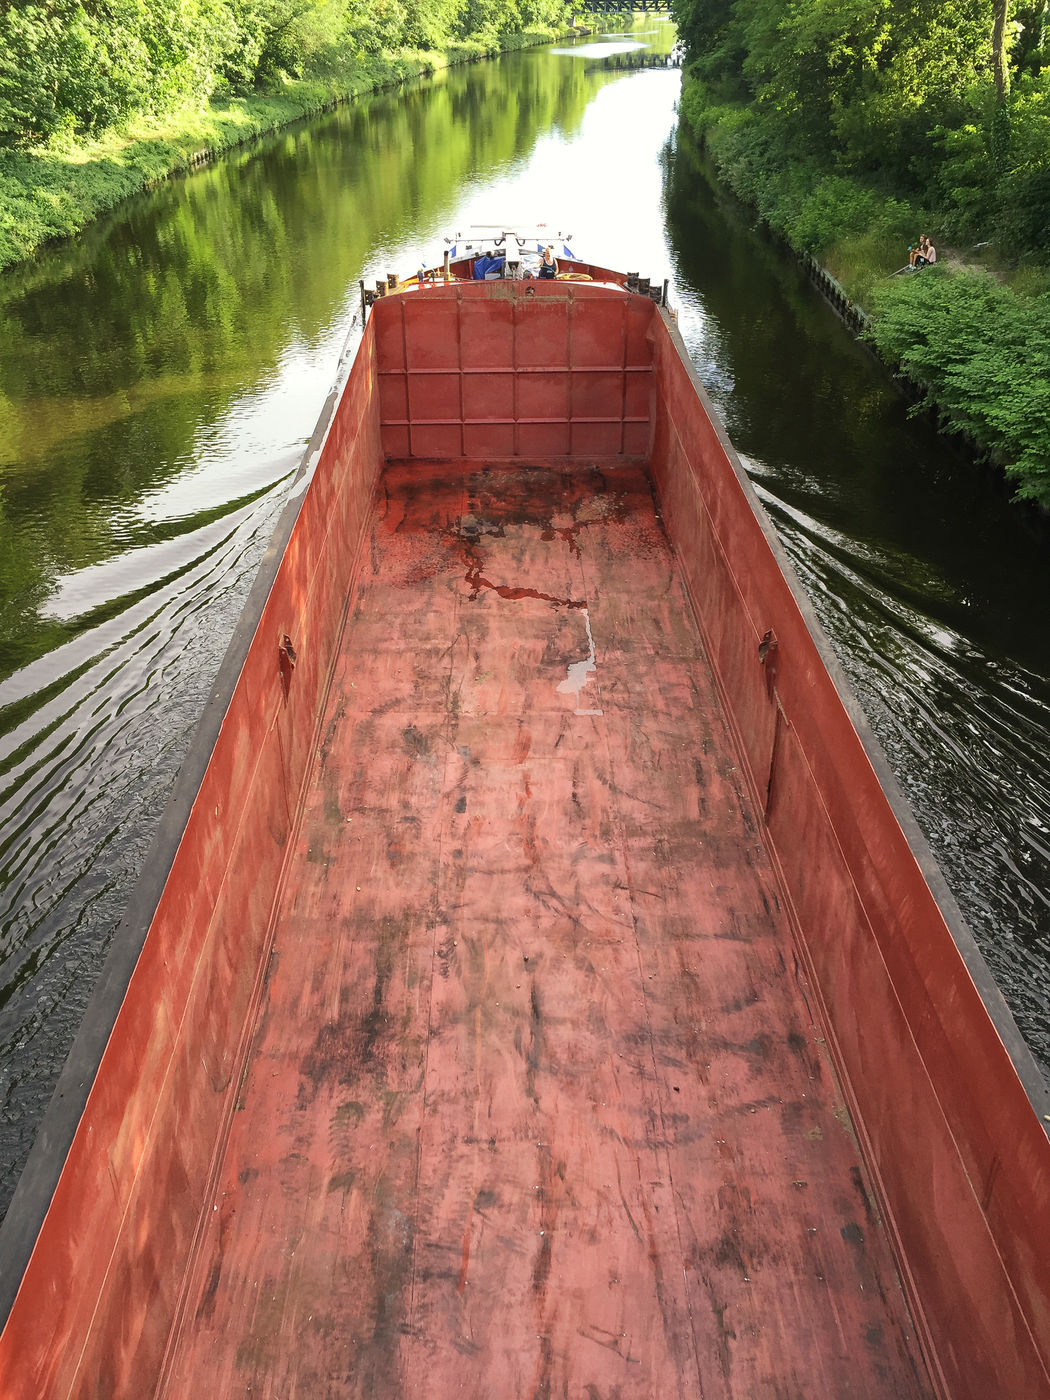 river barge Barge BargeOnTheRiver Berlin Canal Canals And Waterways Day Empty Green In Motion Inland Water Vessel Nature Nature Nautical Vessel Outdoors River Barge River Boat Teltow Teltow Kanal Teltowkanal Trees Water Water Vessel Waterway